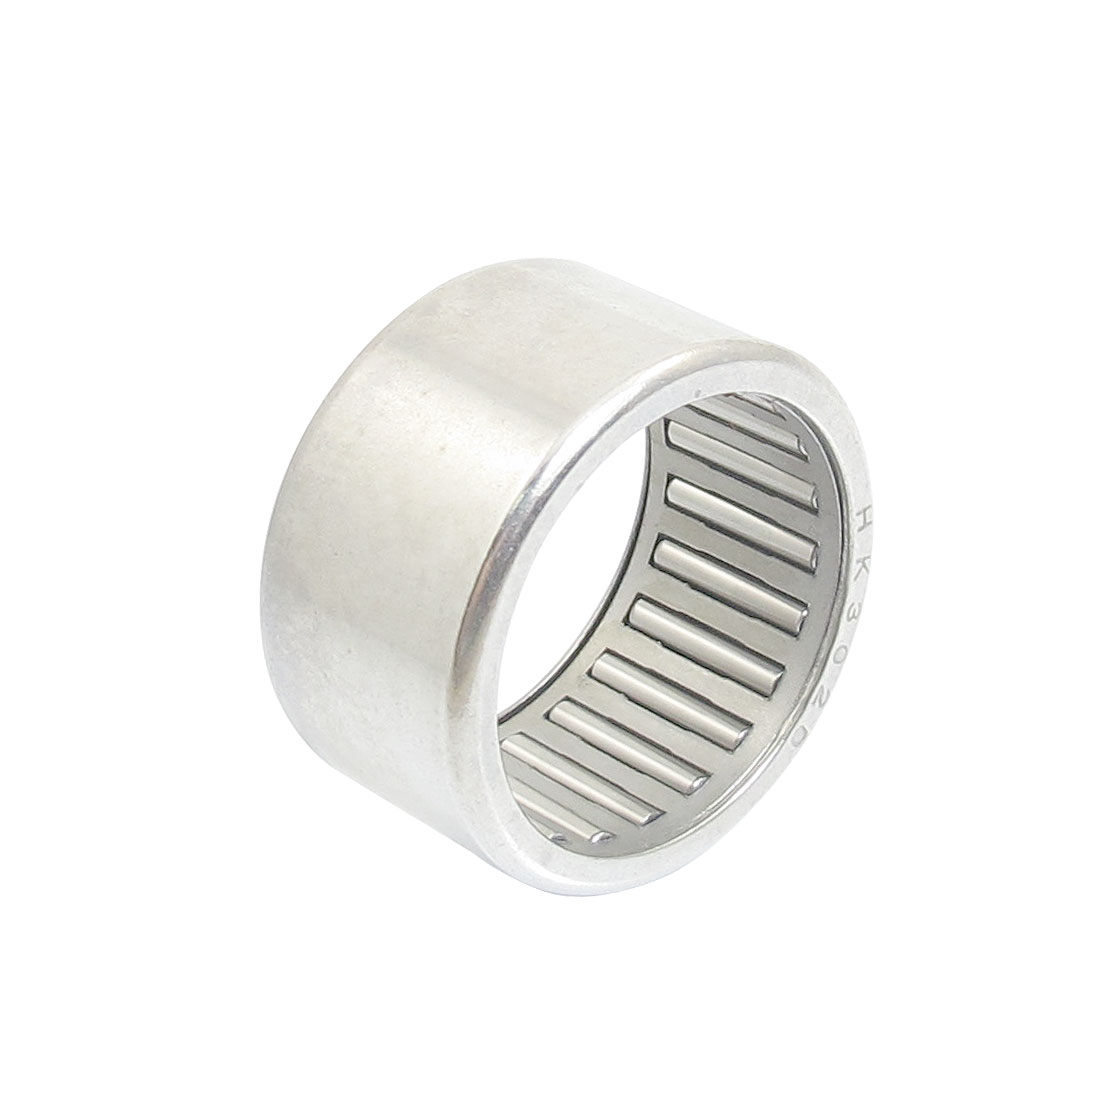 HK303720 30 x 37 x 20mm Drawn Cup Caged Drawn Cup Needle Roller Bearing